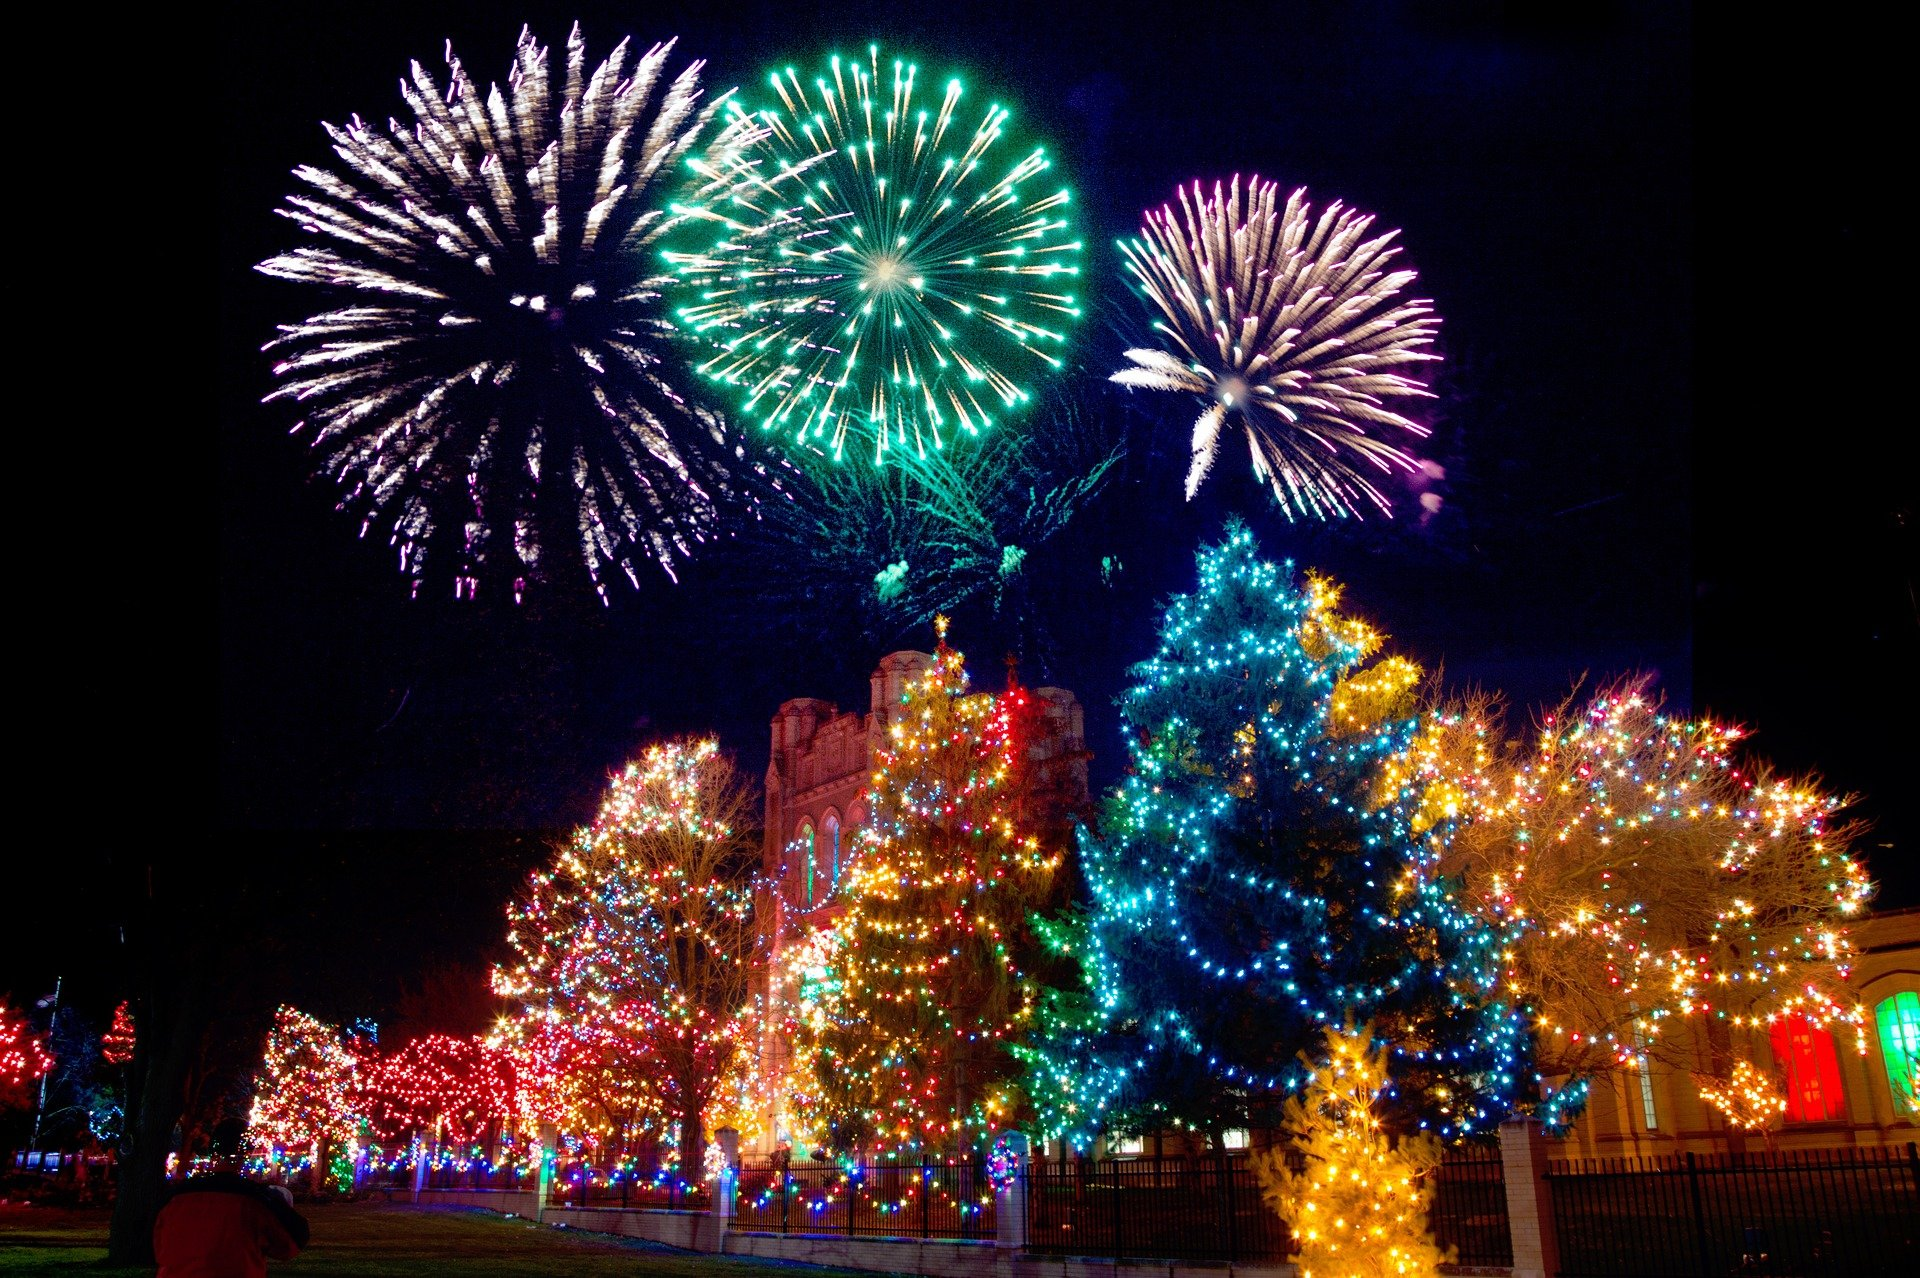 Carols in the Domain - 2020 Christmas Events for the Family